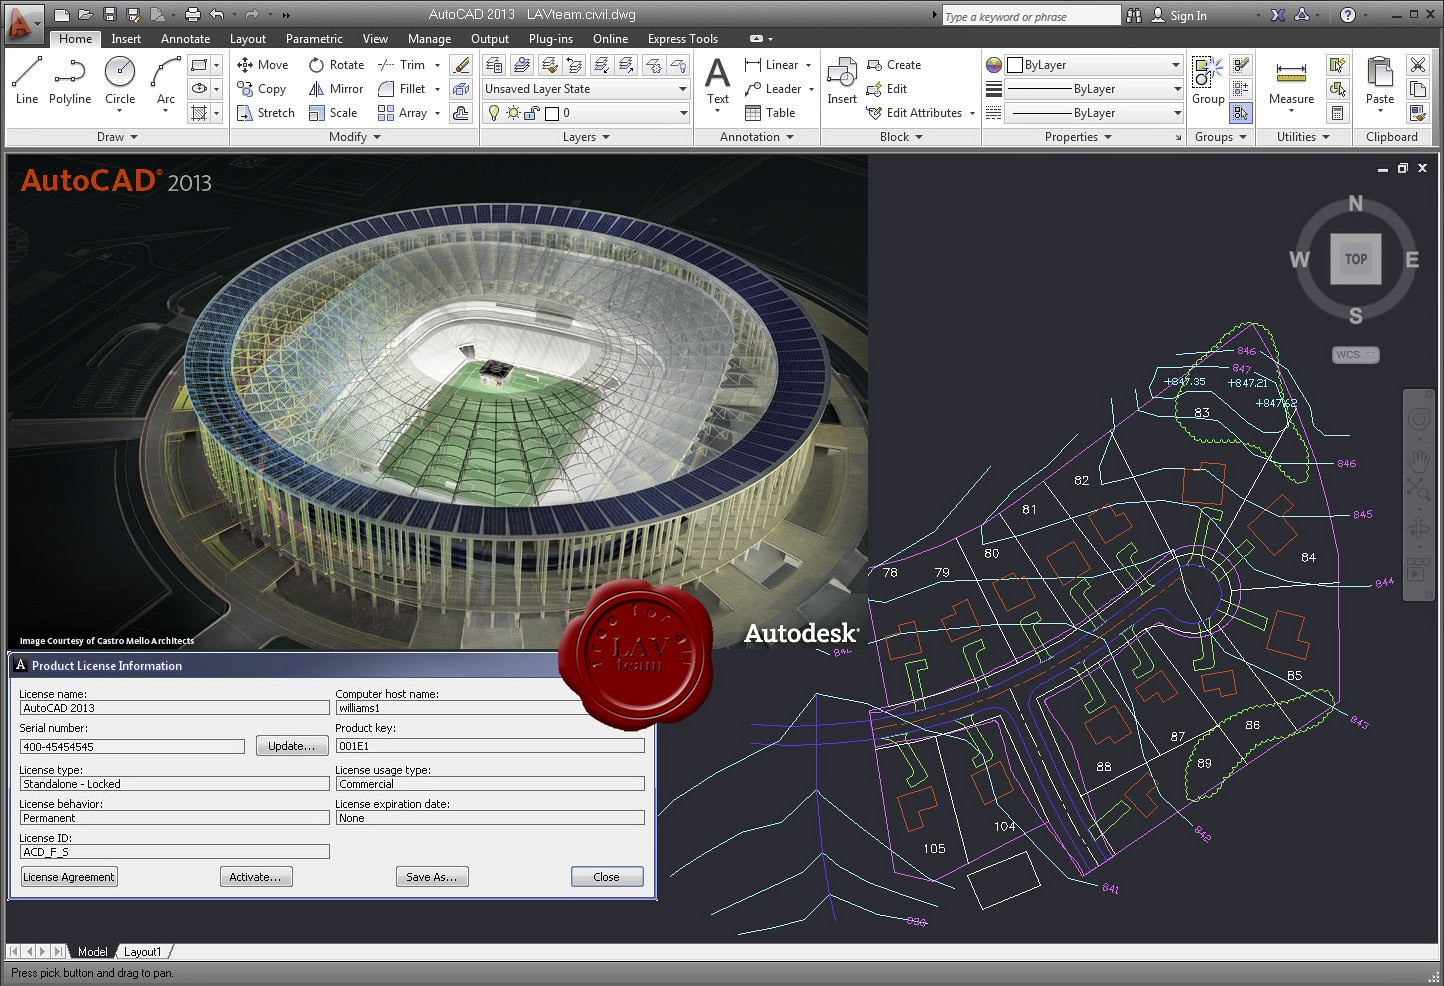 autocad 2012 keygen/crack 32 bit & 64 bit free download